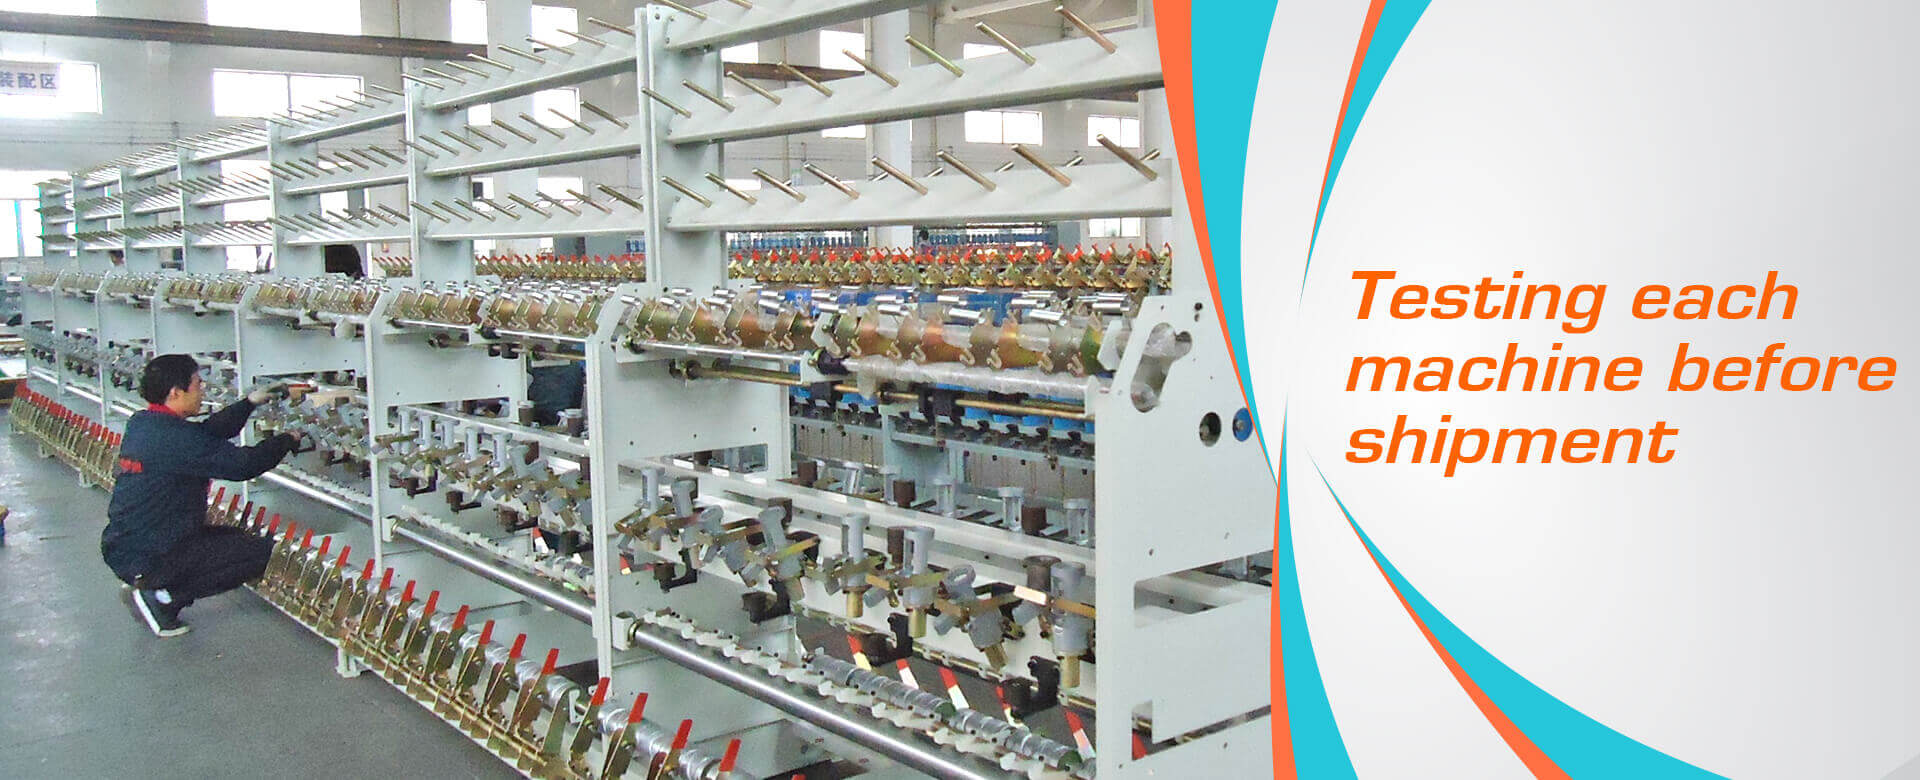 High precision manufacturing process to produce our textile machine.